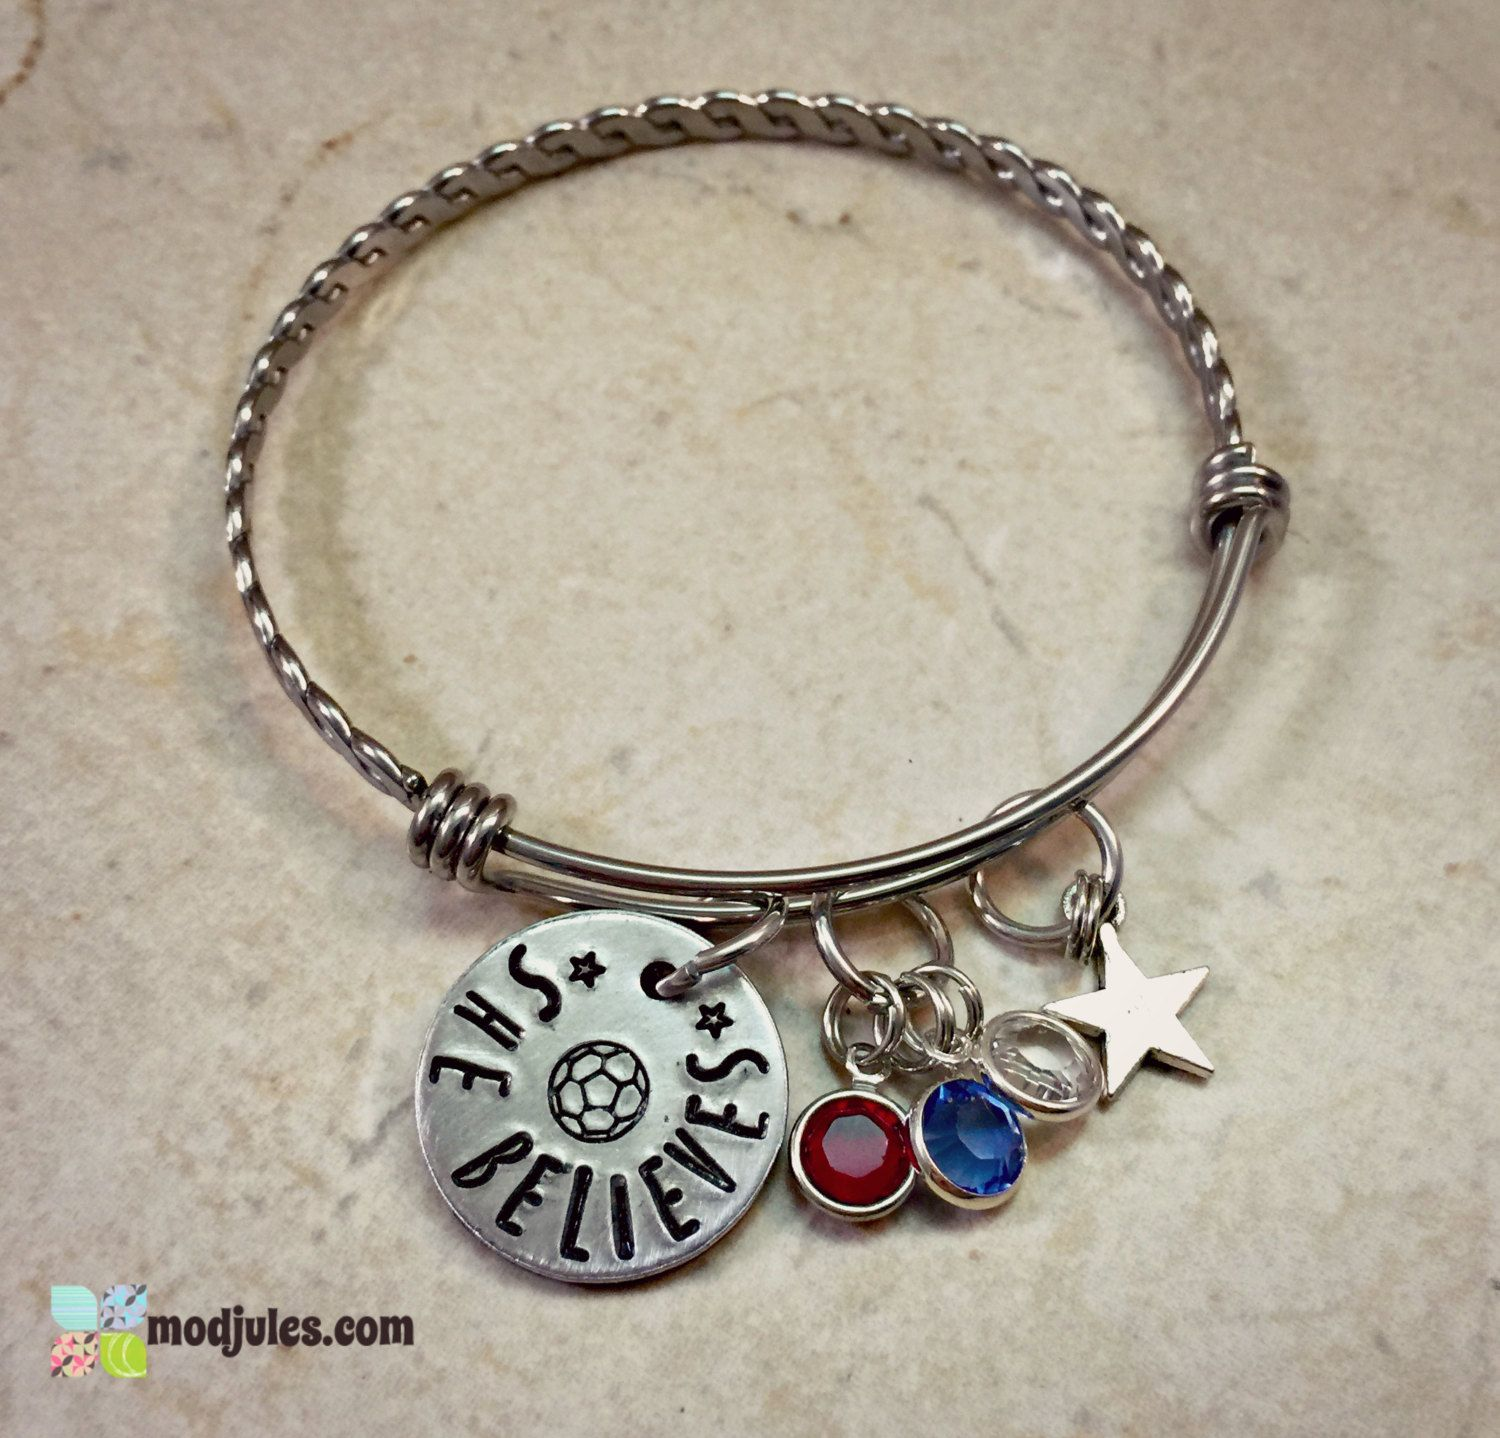 bangle softball bangles girls bracelet personalized name pin adjustable